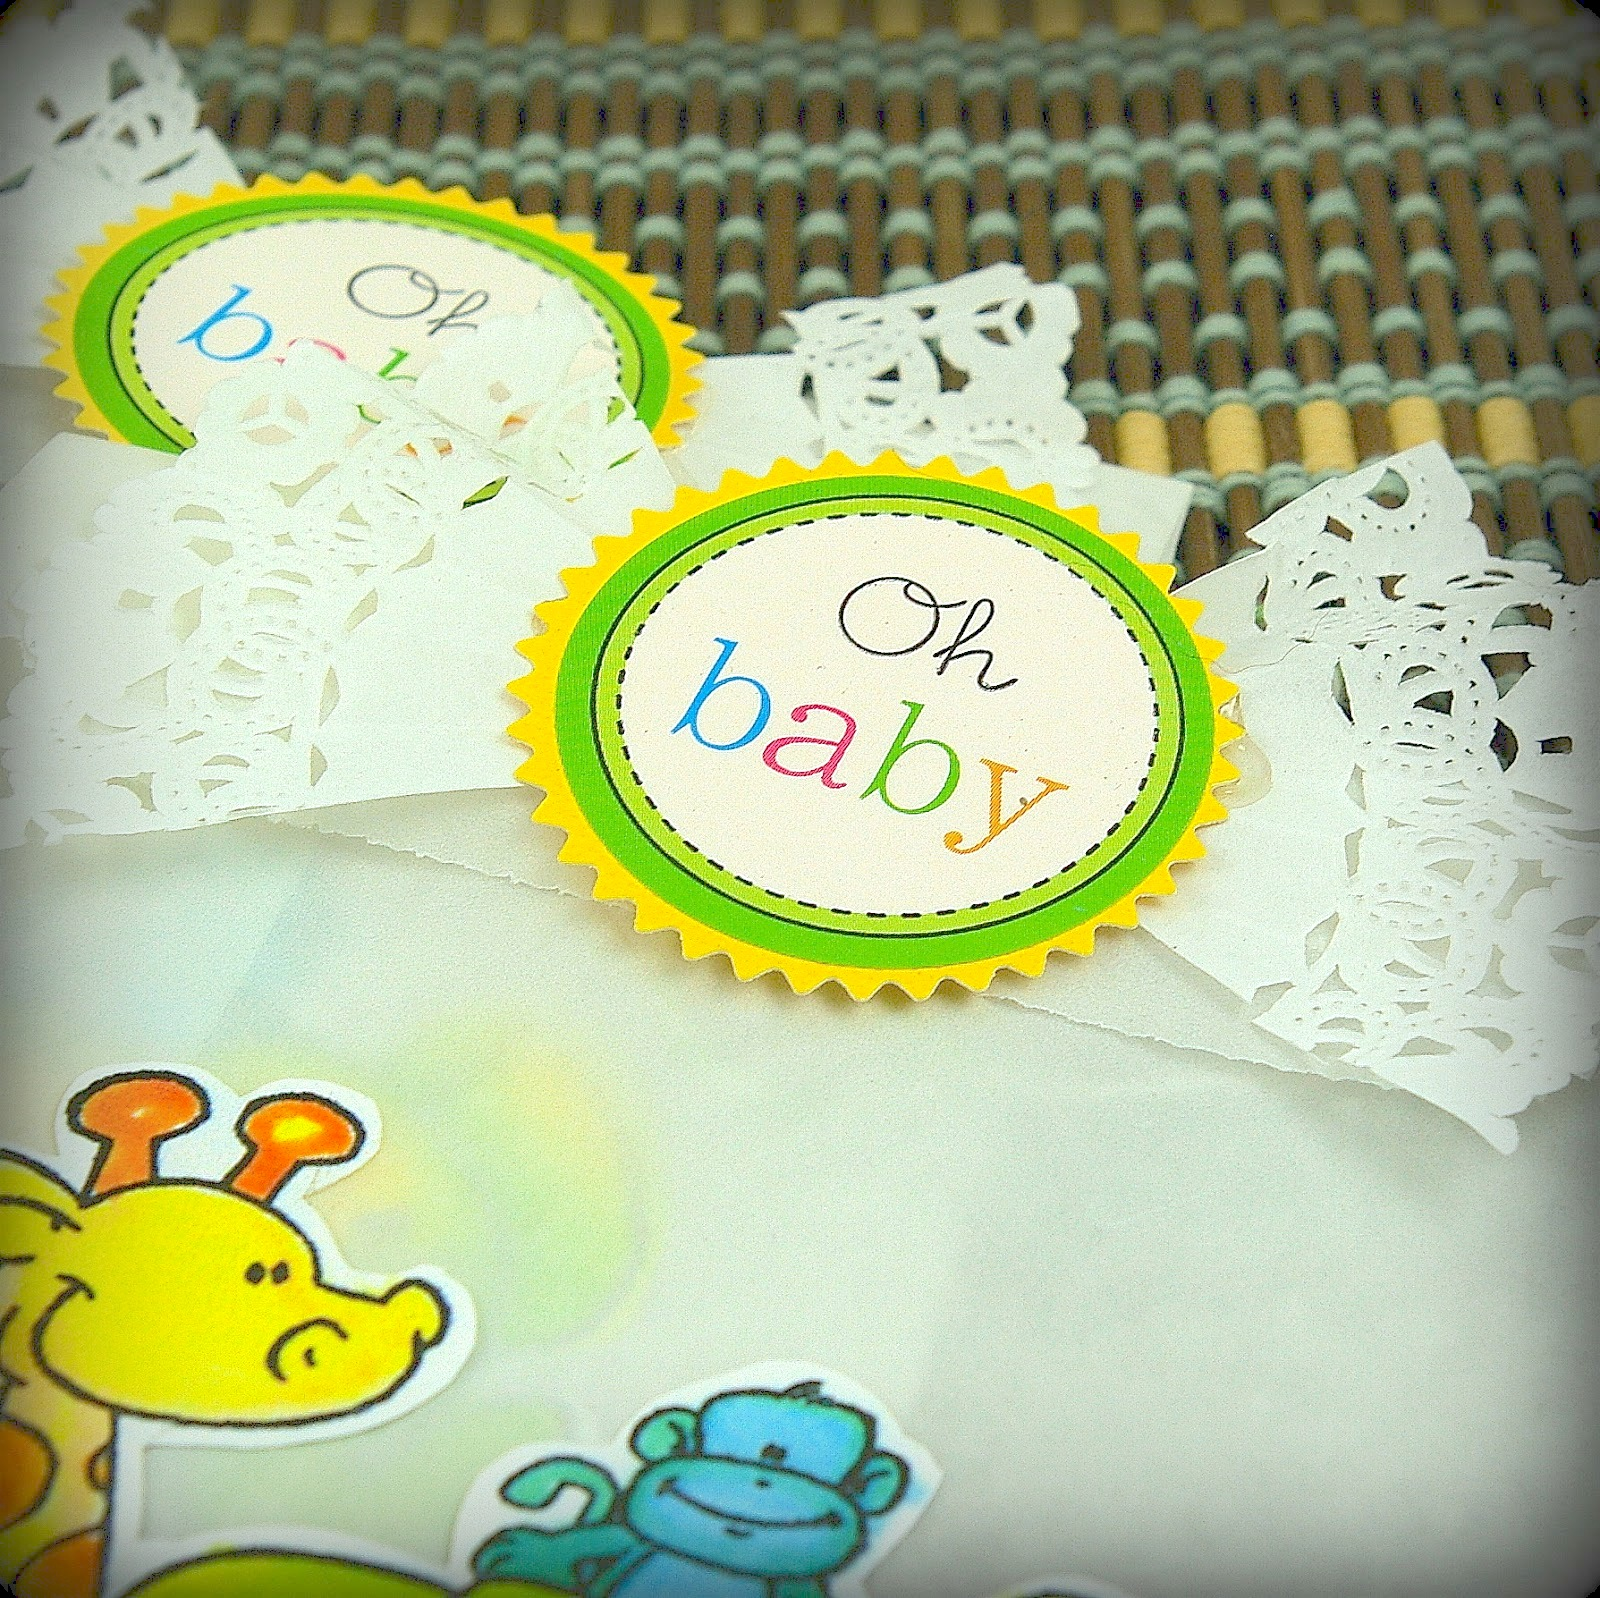 SRM Stickers Blog - DIY Baby Shower by Michelle- #baby #shower  #DIY #kit #glassine #bag #doily #twine #stickers